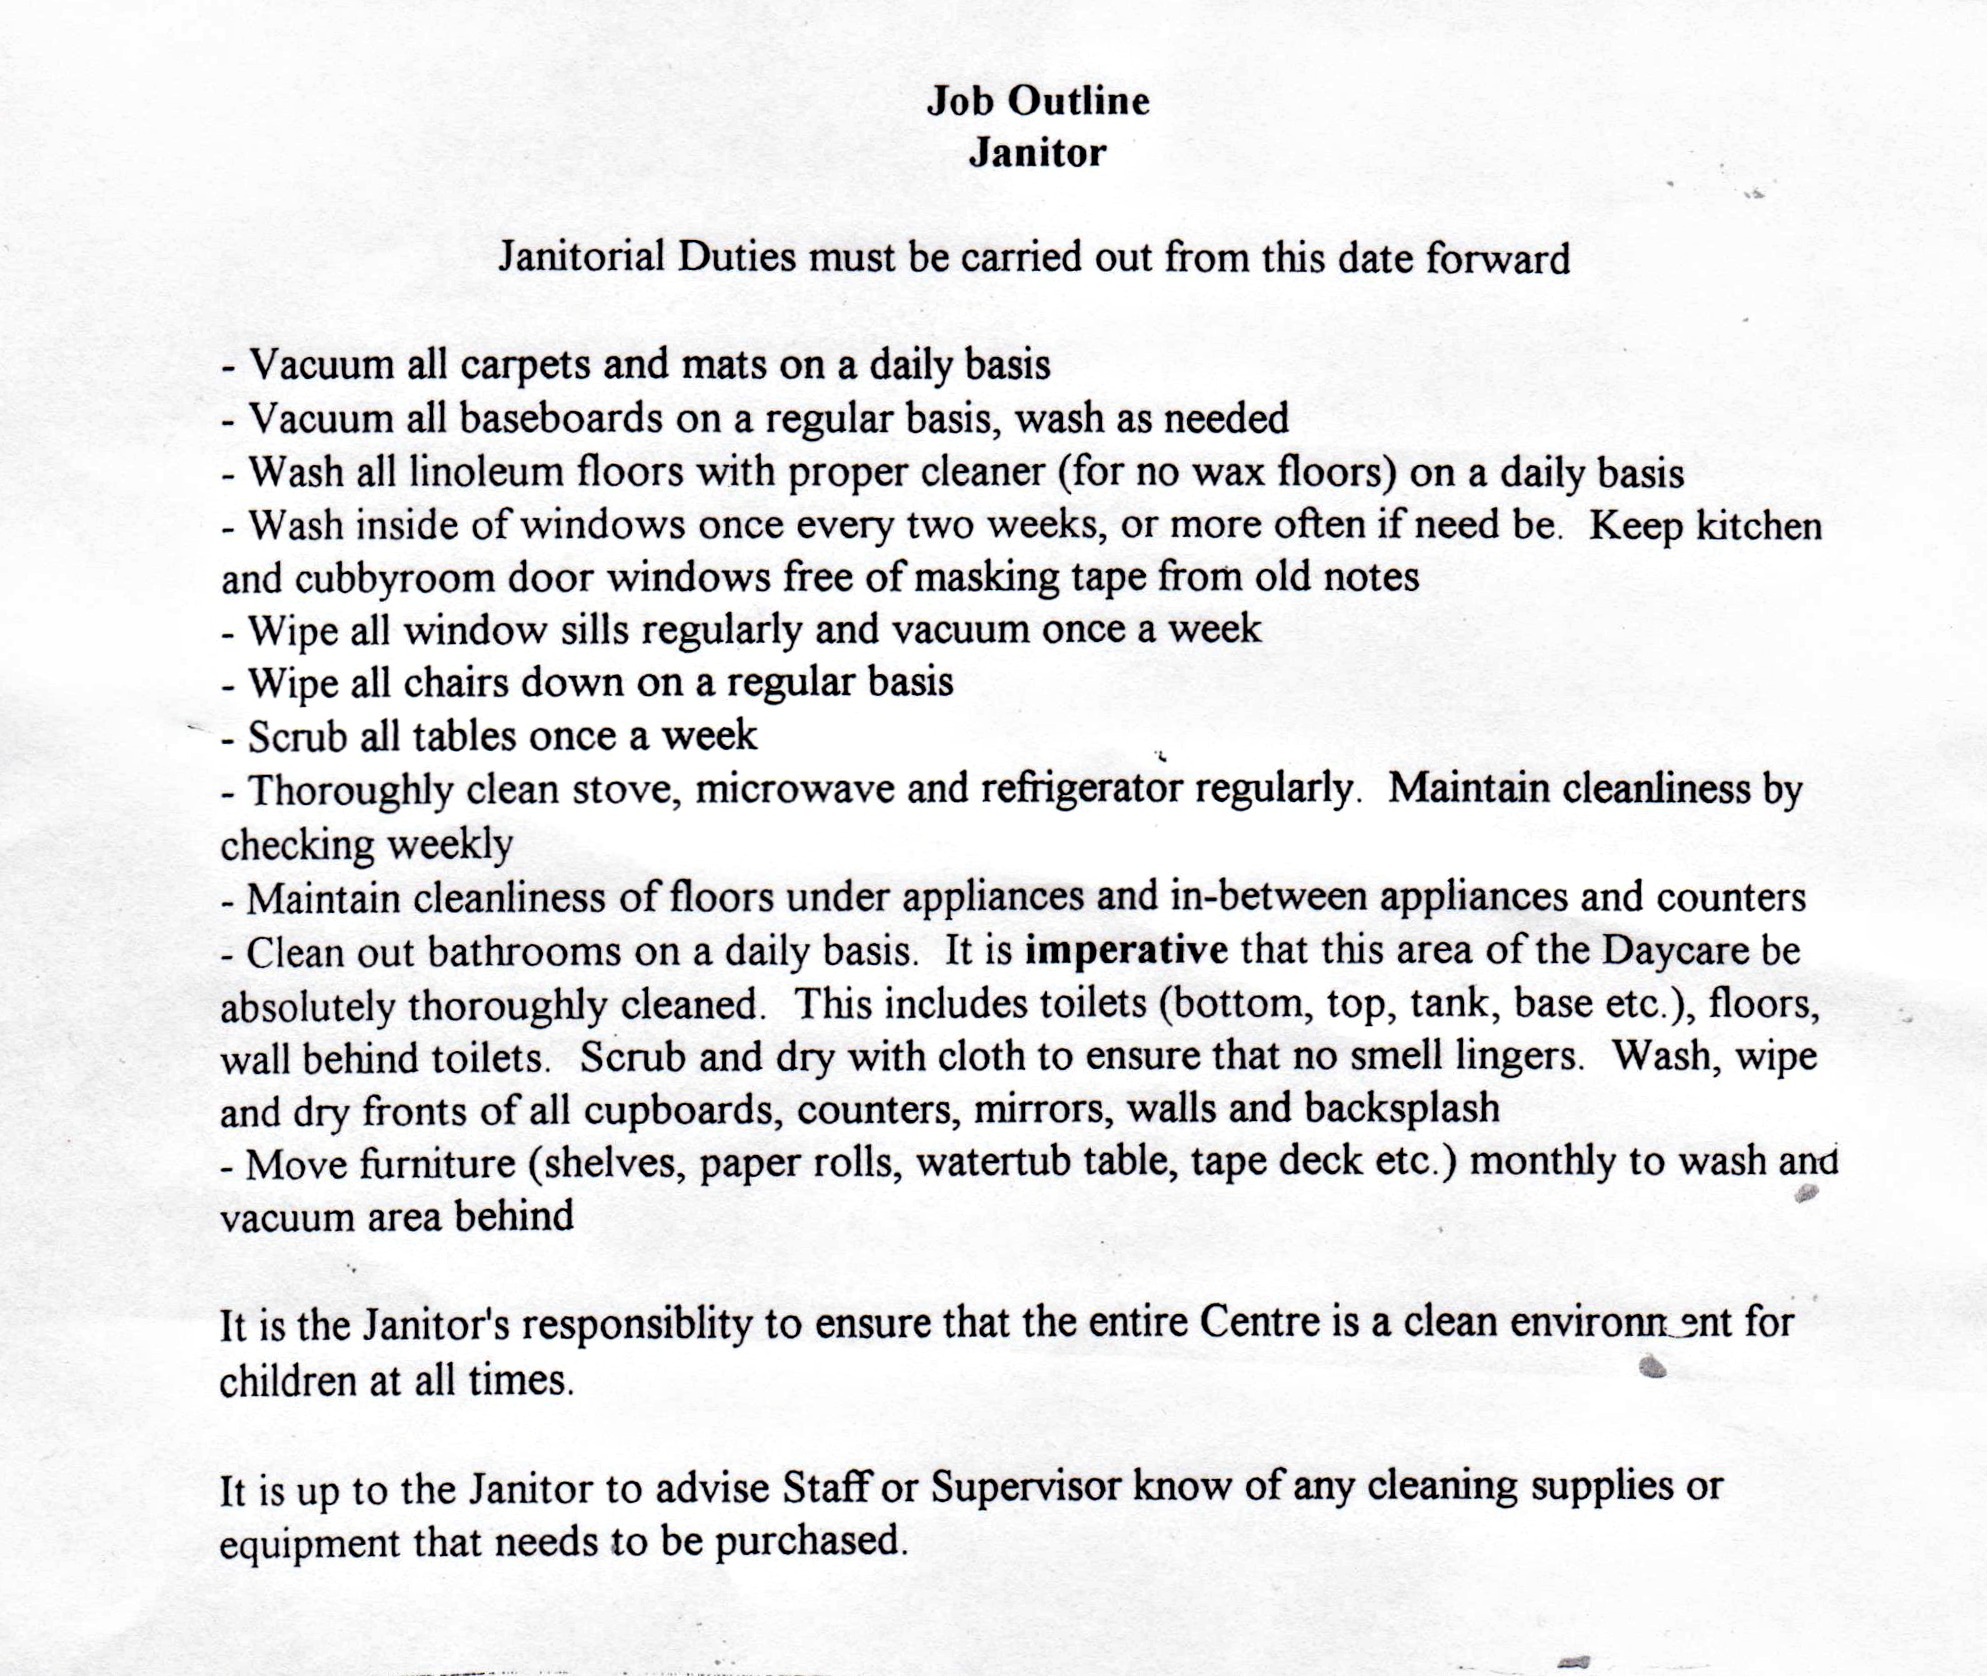 resume job description for janitor